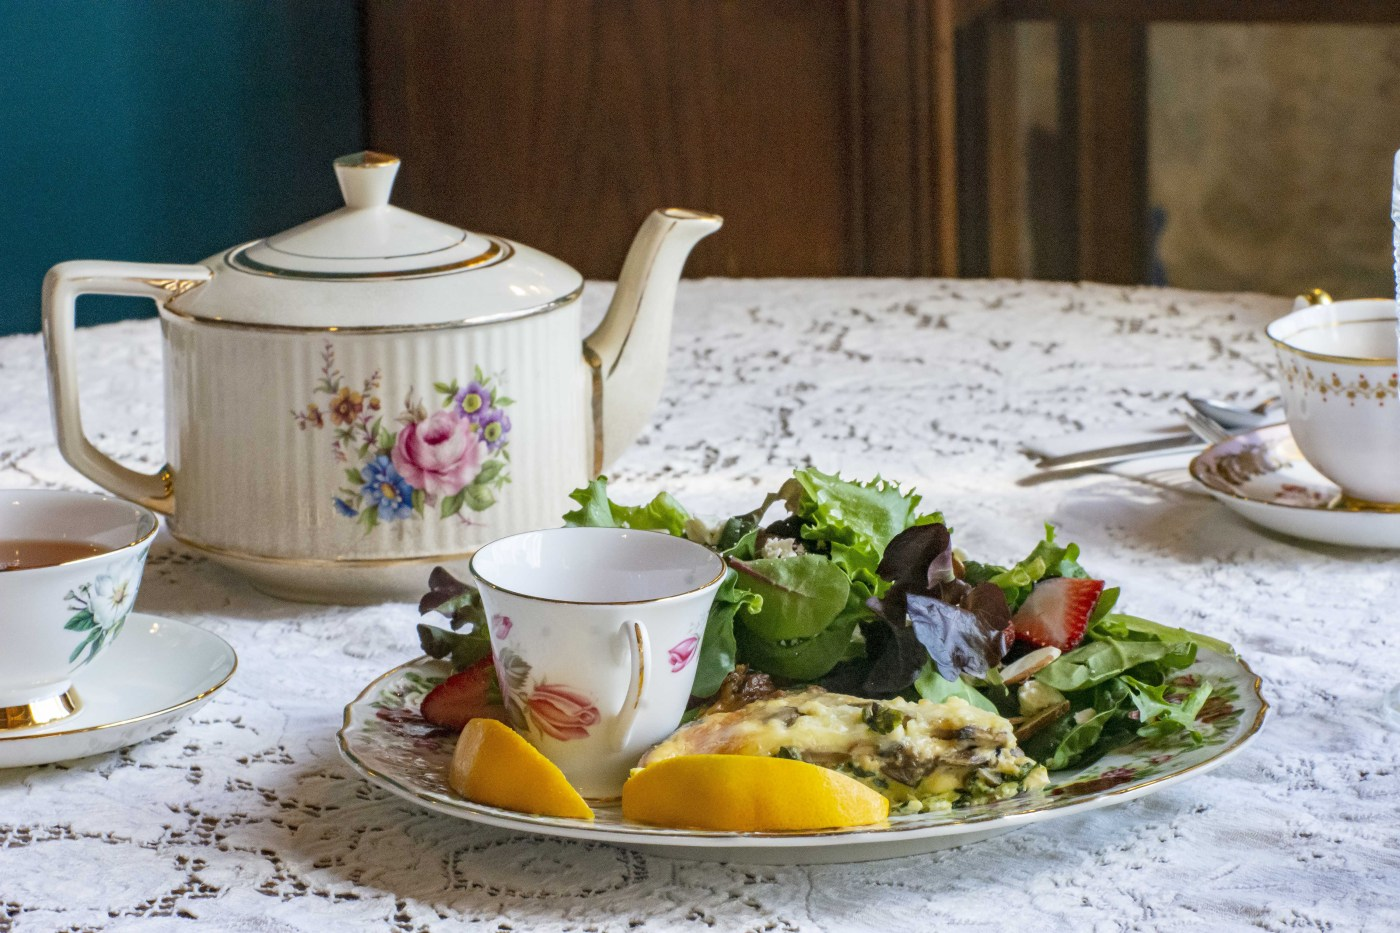 Teapot and cup with plate of food on a lace covered table